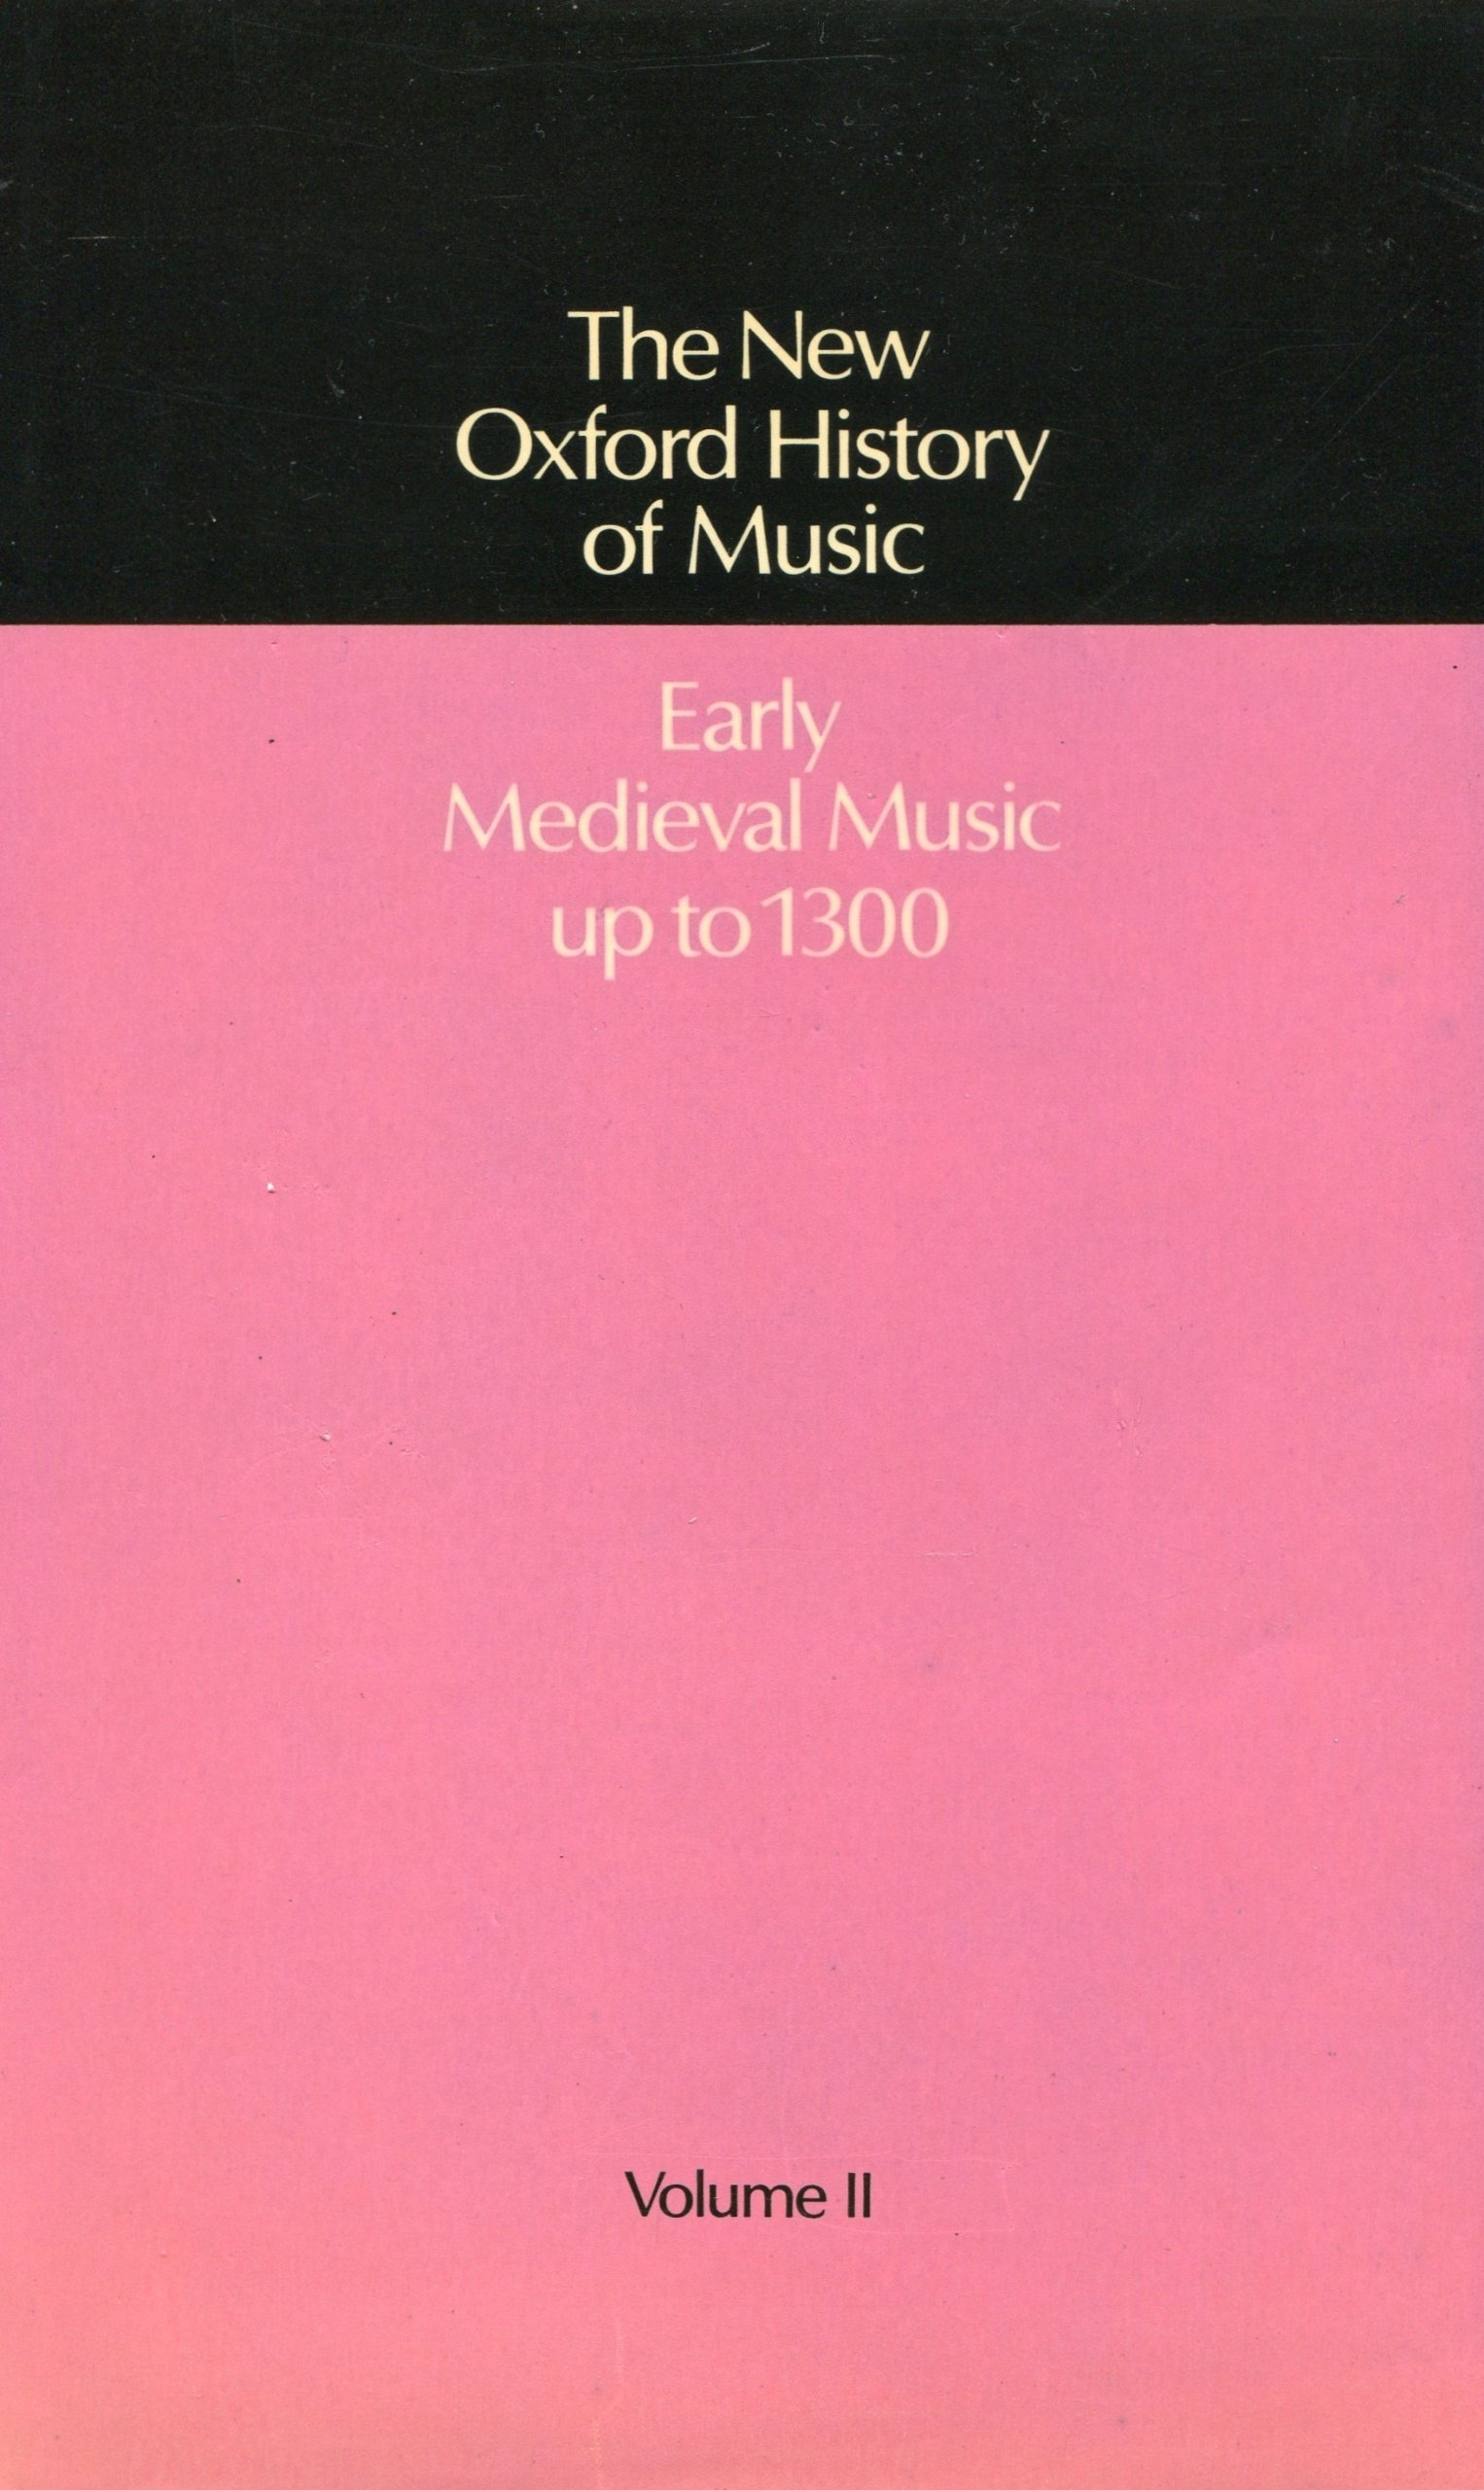 New Oxford History of Music, Early Medieval Music up to 1300